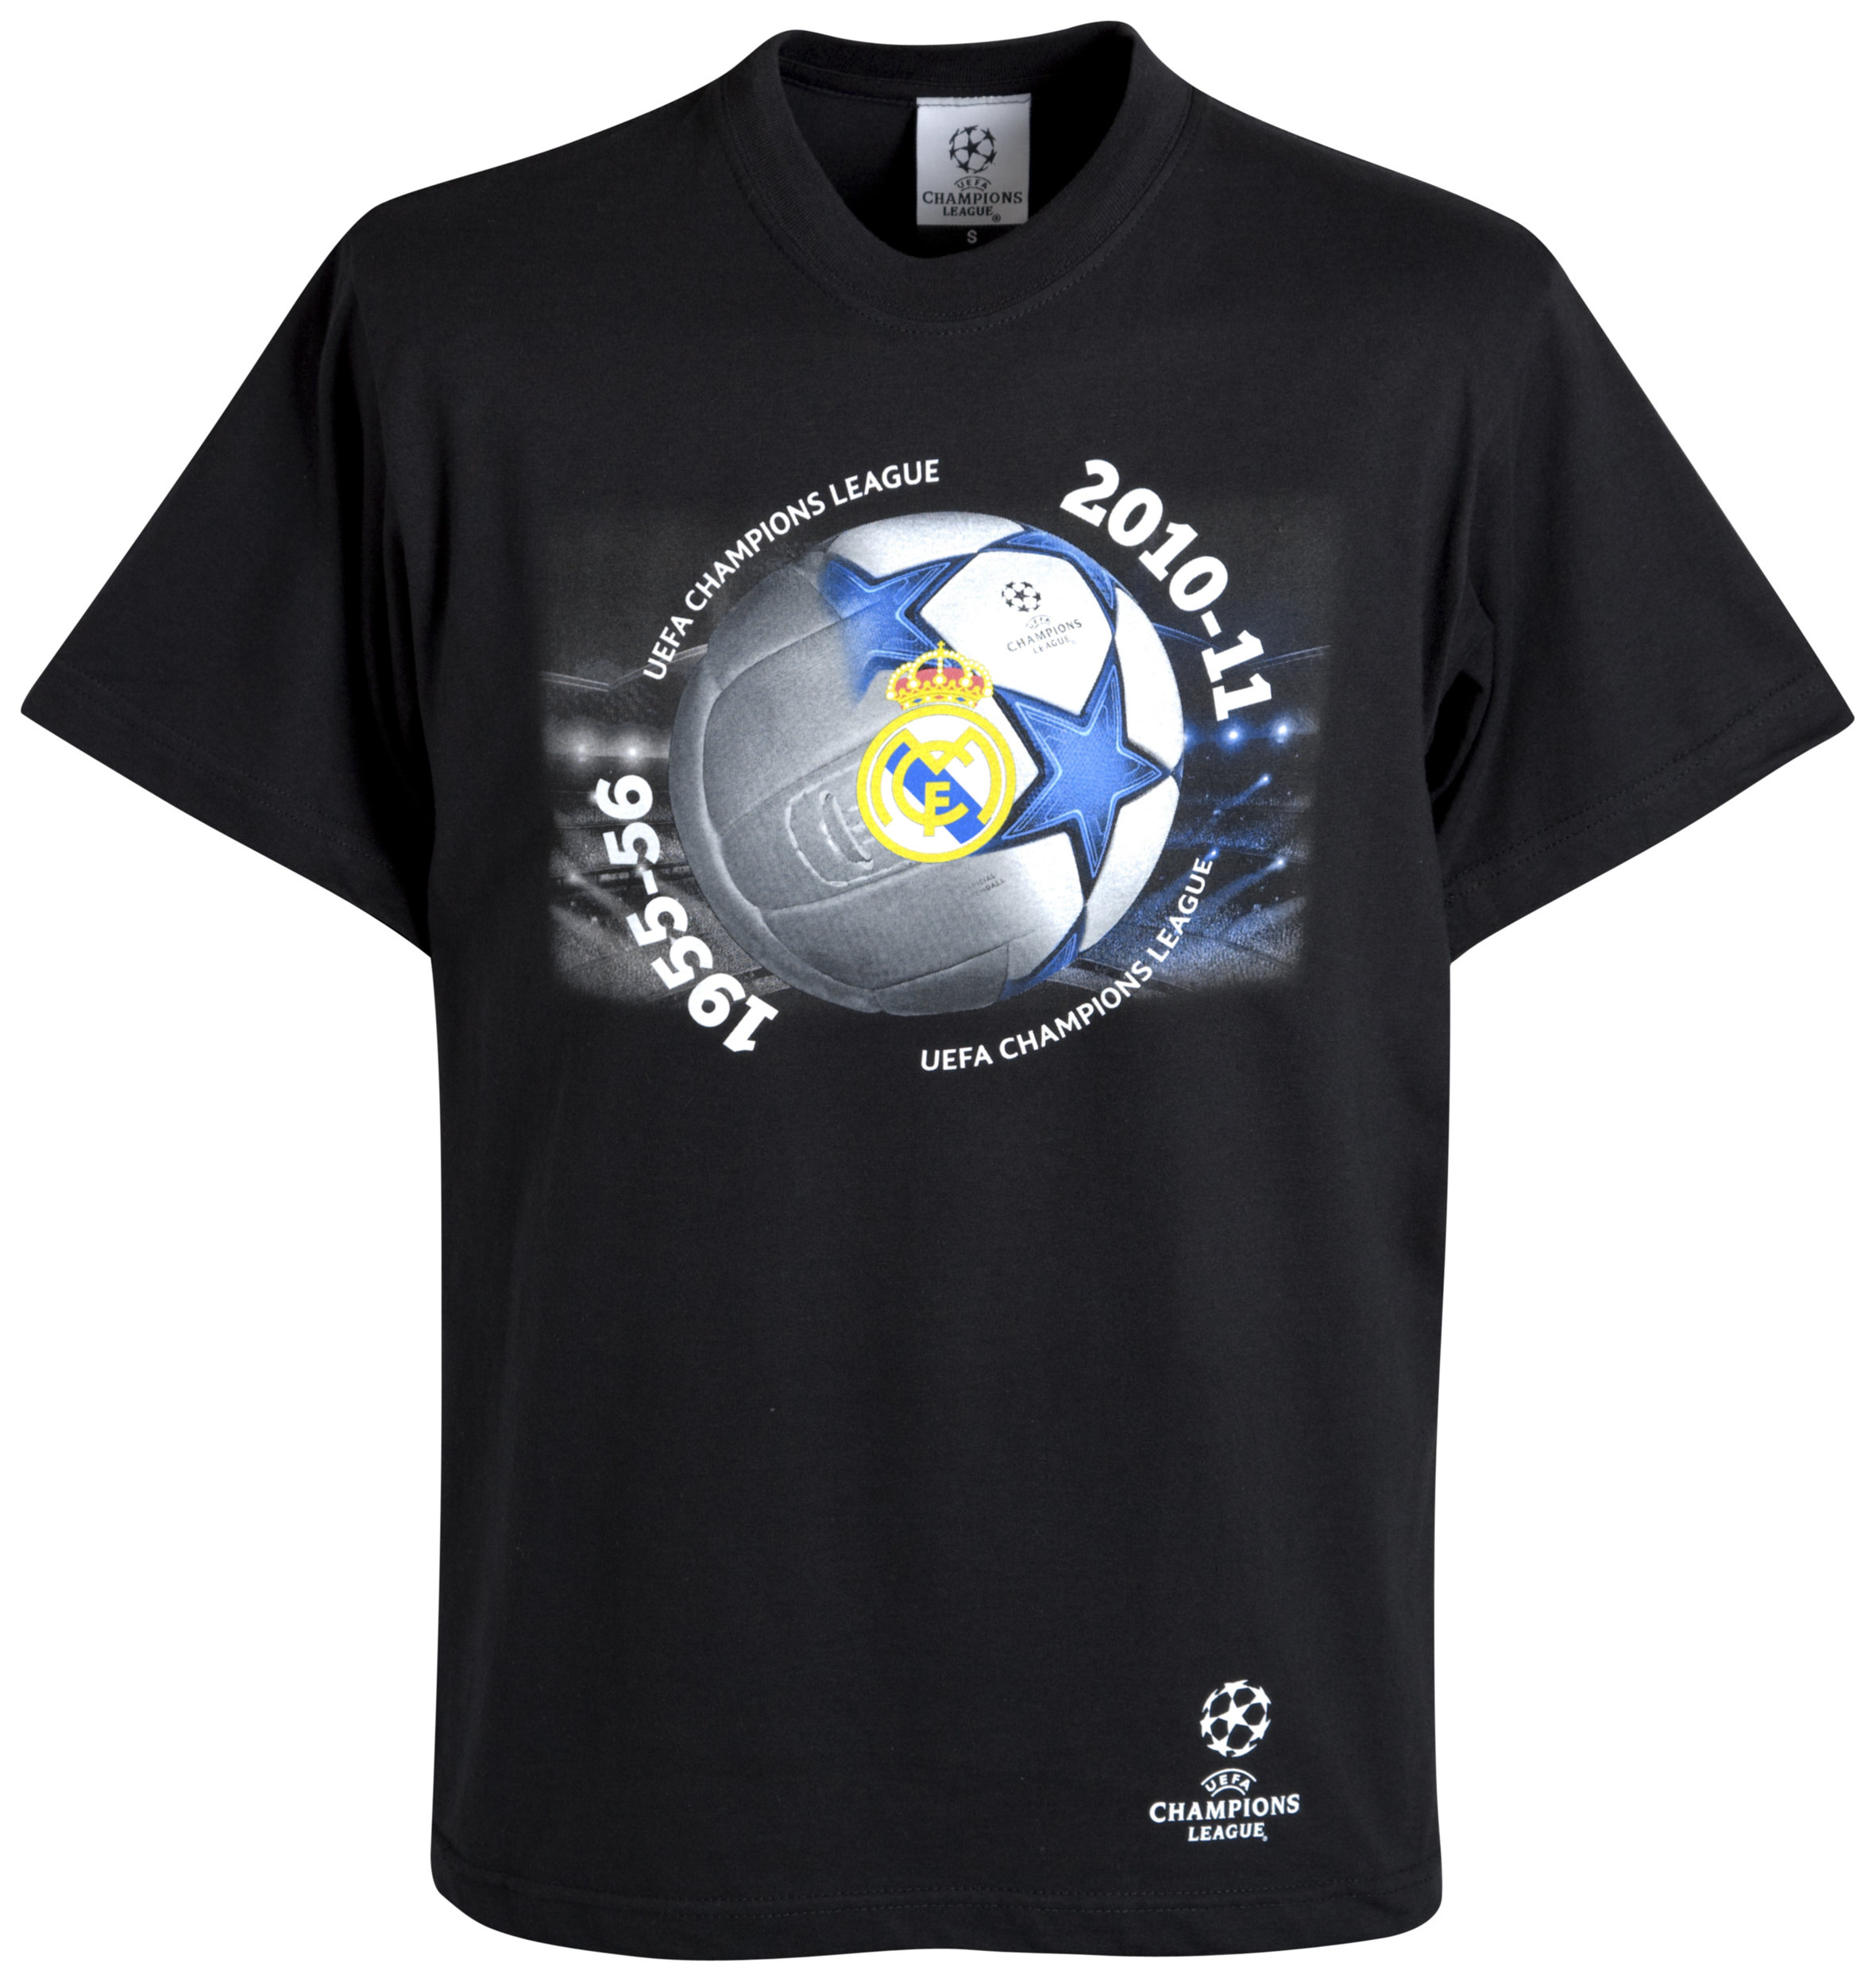 Real Madrid UEFA Champions League T-Shirt - Black